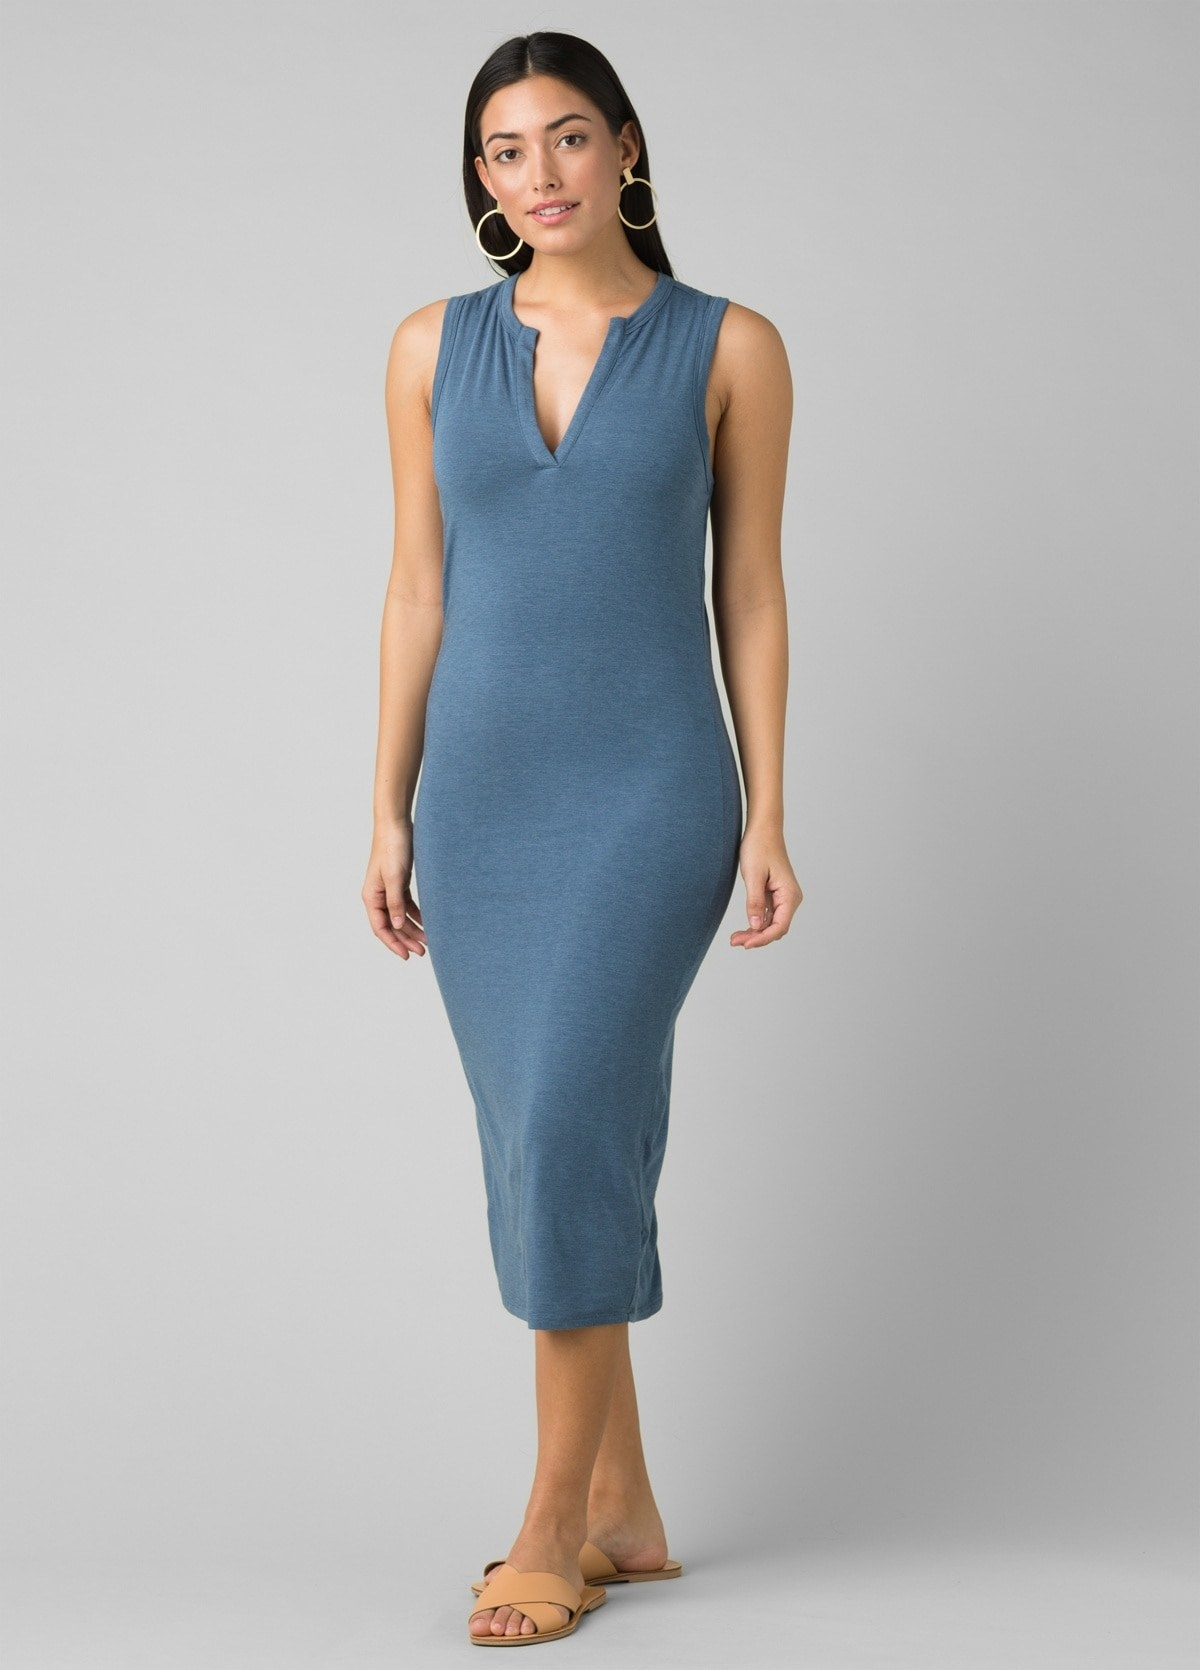 model in blue dress with wide tank sleeves